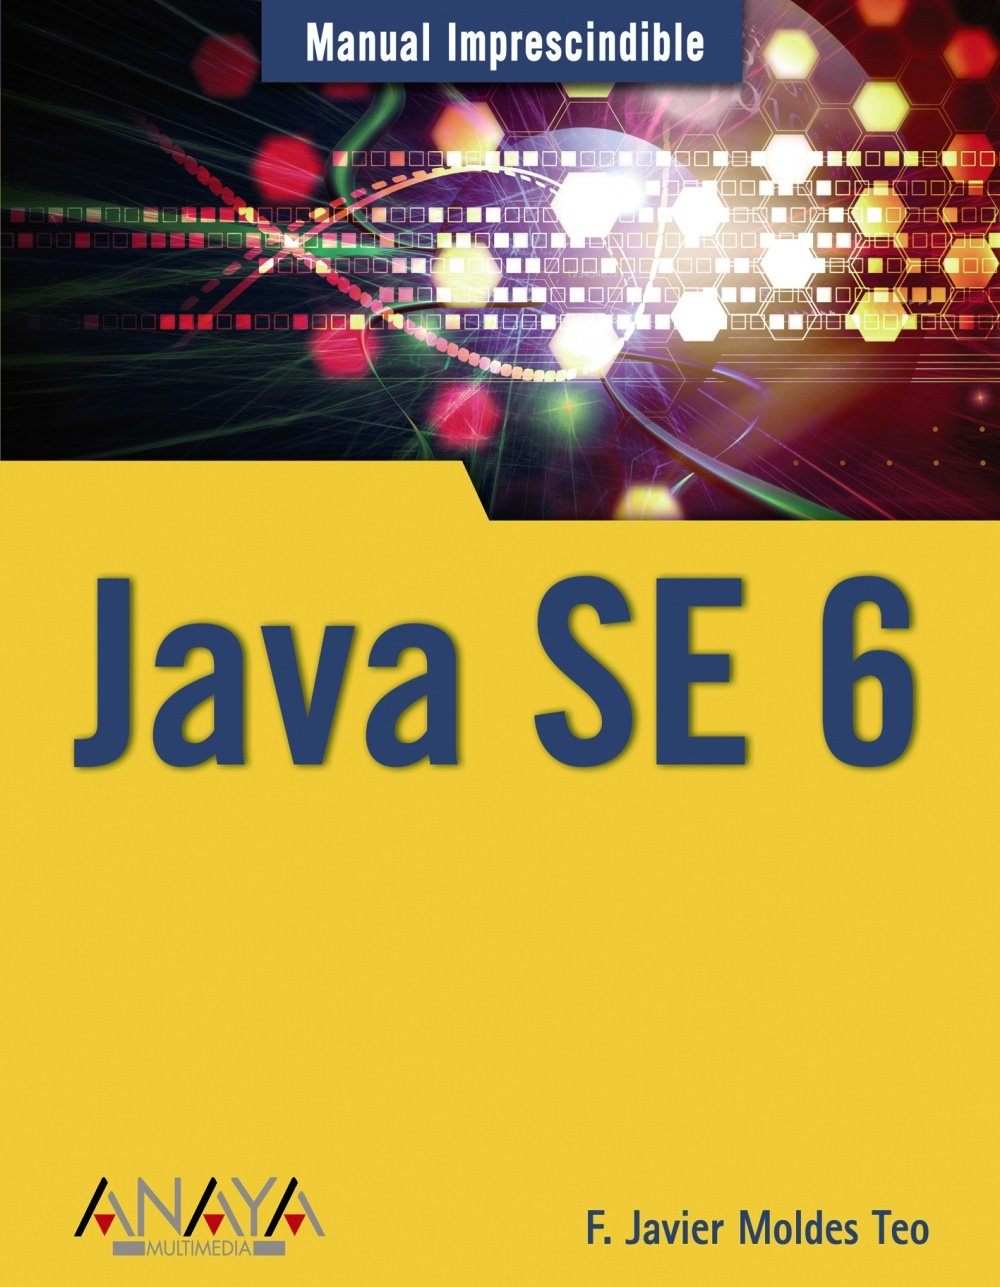 Java SE 6 (Spanish Edition): F. Javier Moldes: 9788441523487: Amazon.com: Books